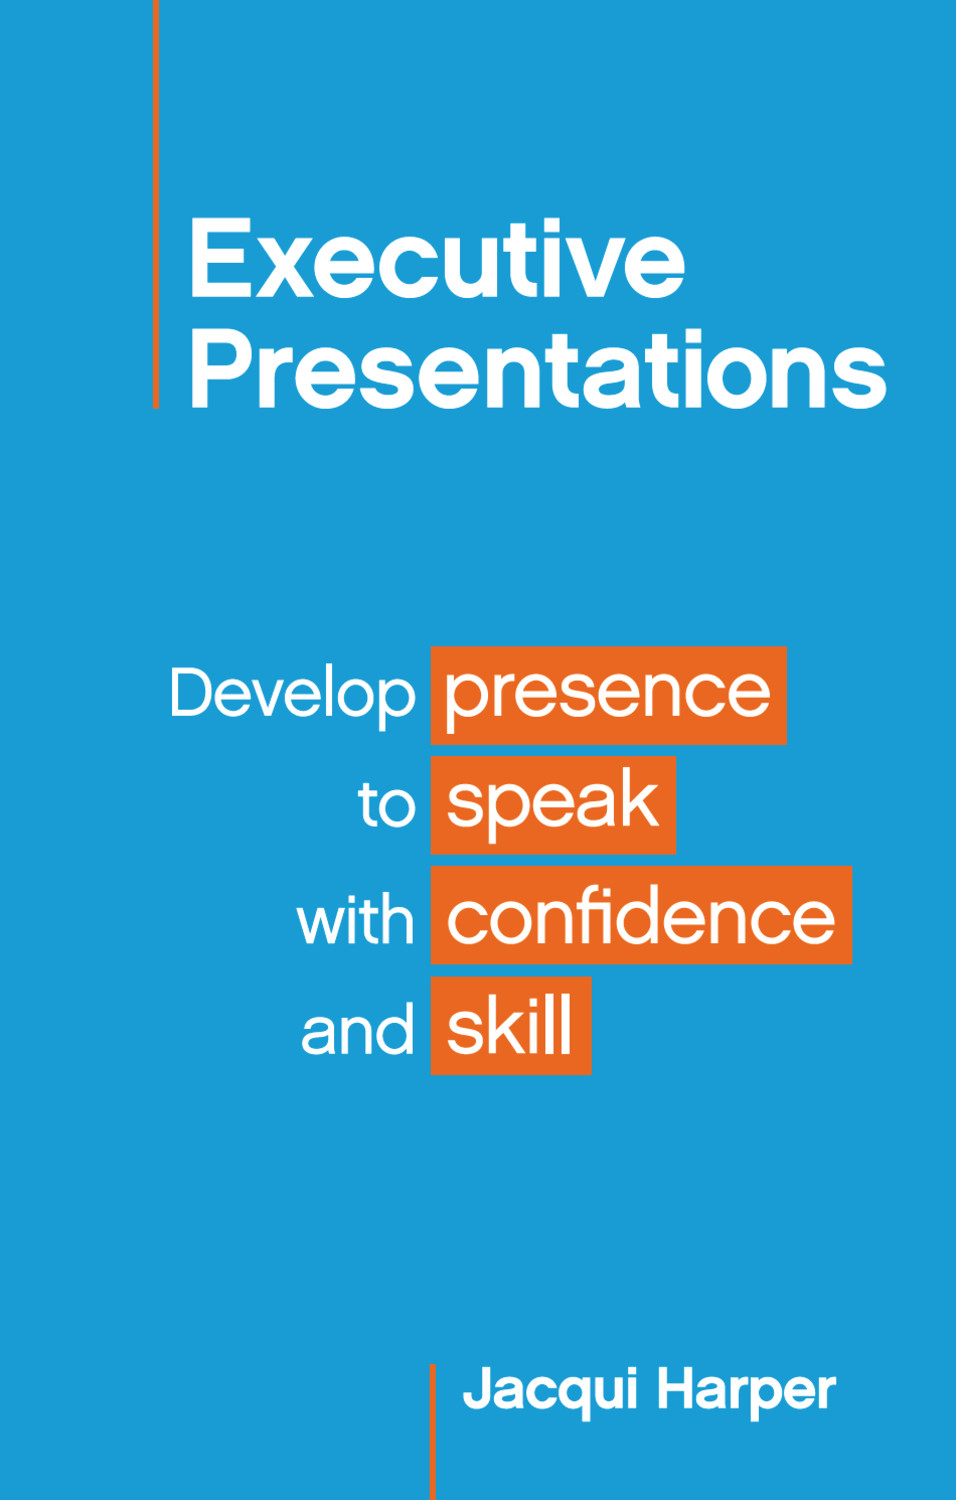 Book cover for Executive Presentations:  Develop presence to speak with confidence and skill a book by Jacqui  Harper